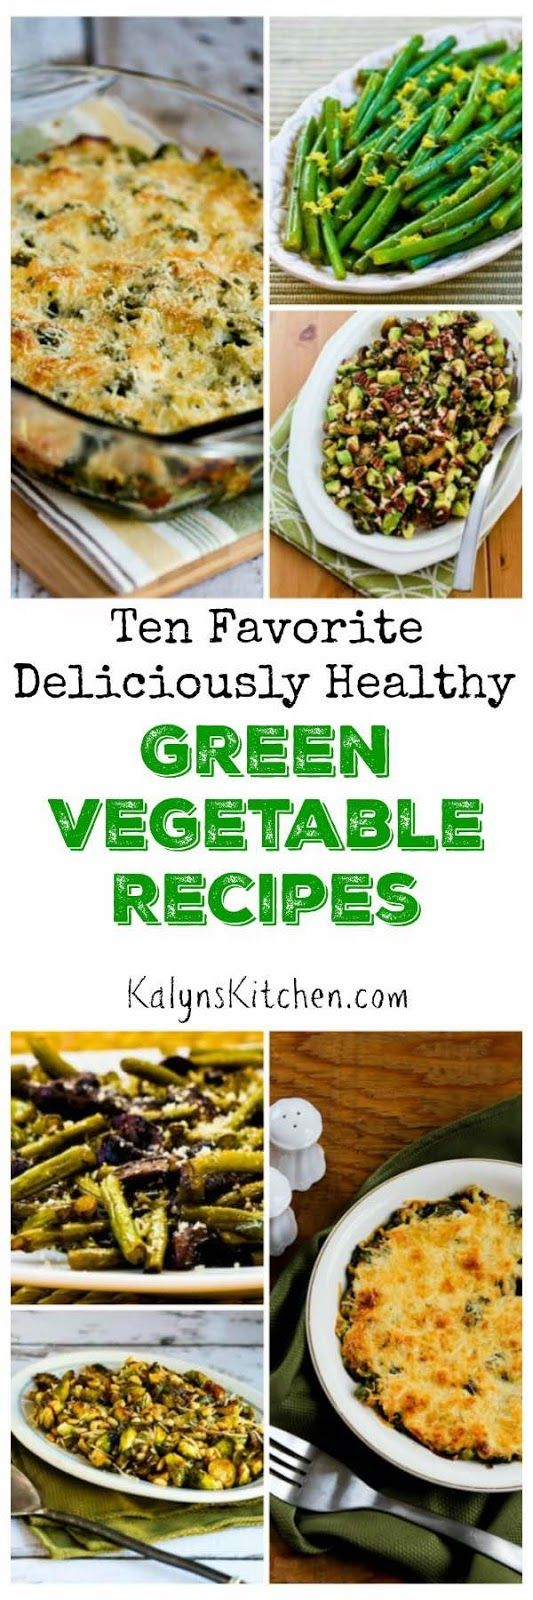 Here are my Ten Favorite Deliciously Healthy Green Vegetable Recipes; perfect for a holiday meal or any time you're making a special dinner. All the recipes are low-carb and gluten-free and some are Paleo.  [found on KalynsKitchen.com]